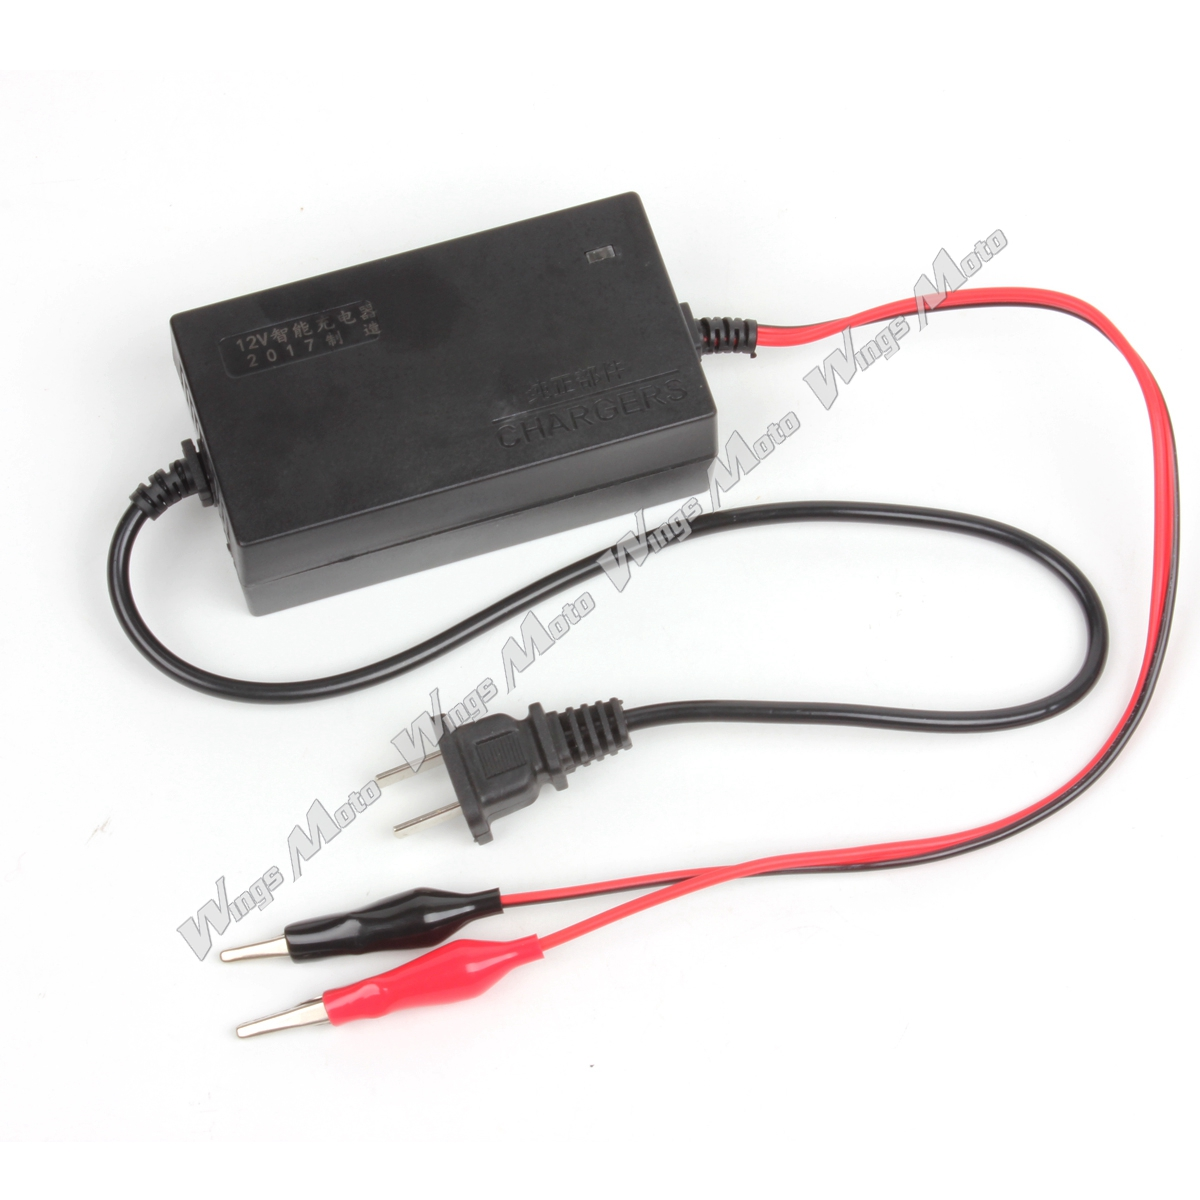 12V Lead-acid Battery Charger for Motorcycle Dirt Pit Bike Moped Scooter ATV